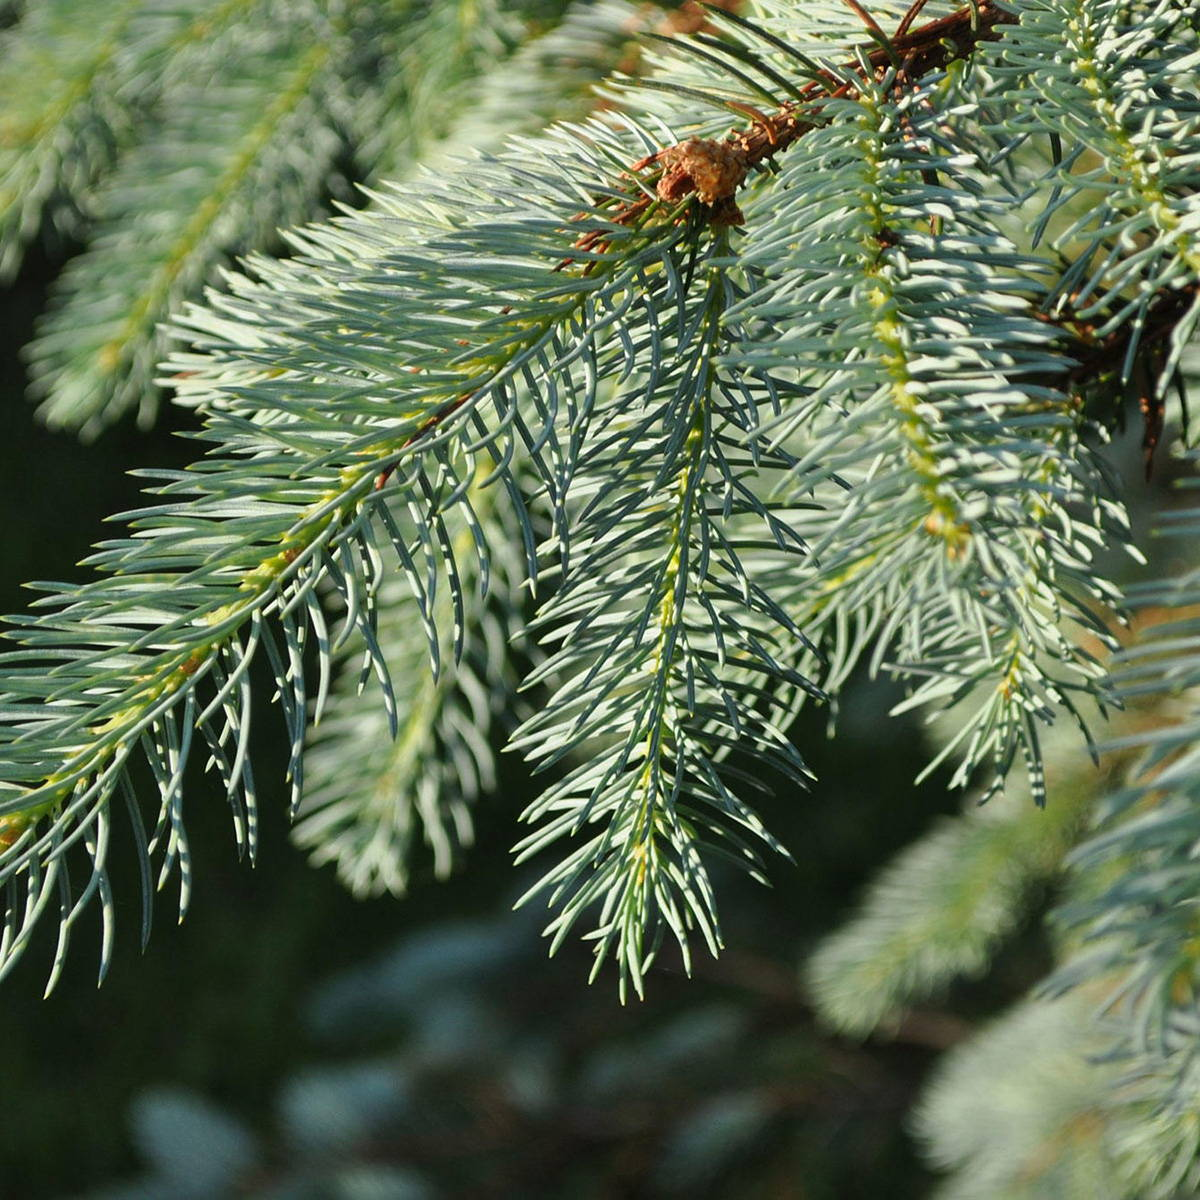 A photograph of wild spruce